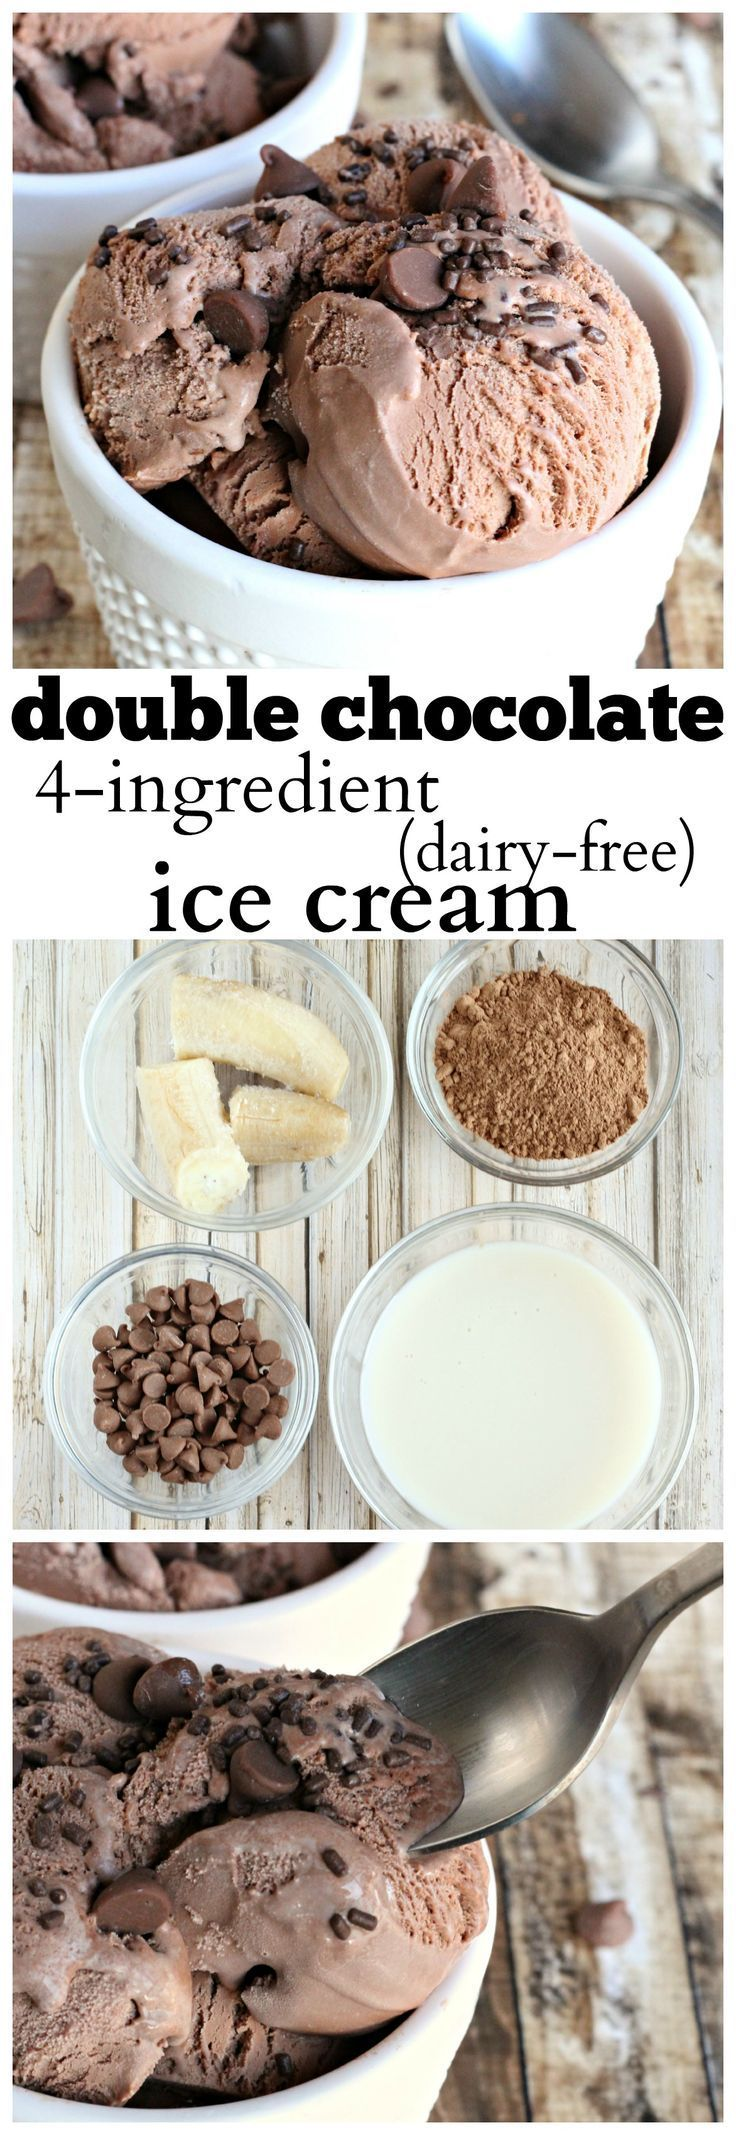 Double Chocolate ice cream, made dairy free with only 4 ingredients. Instead of almond milk try coconut milk